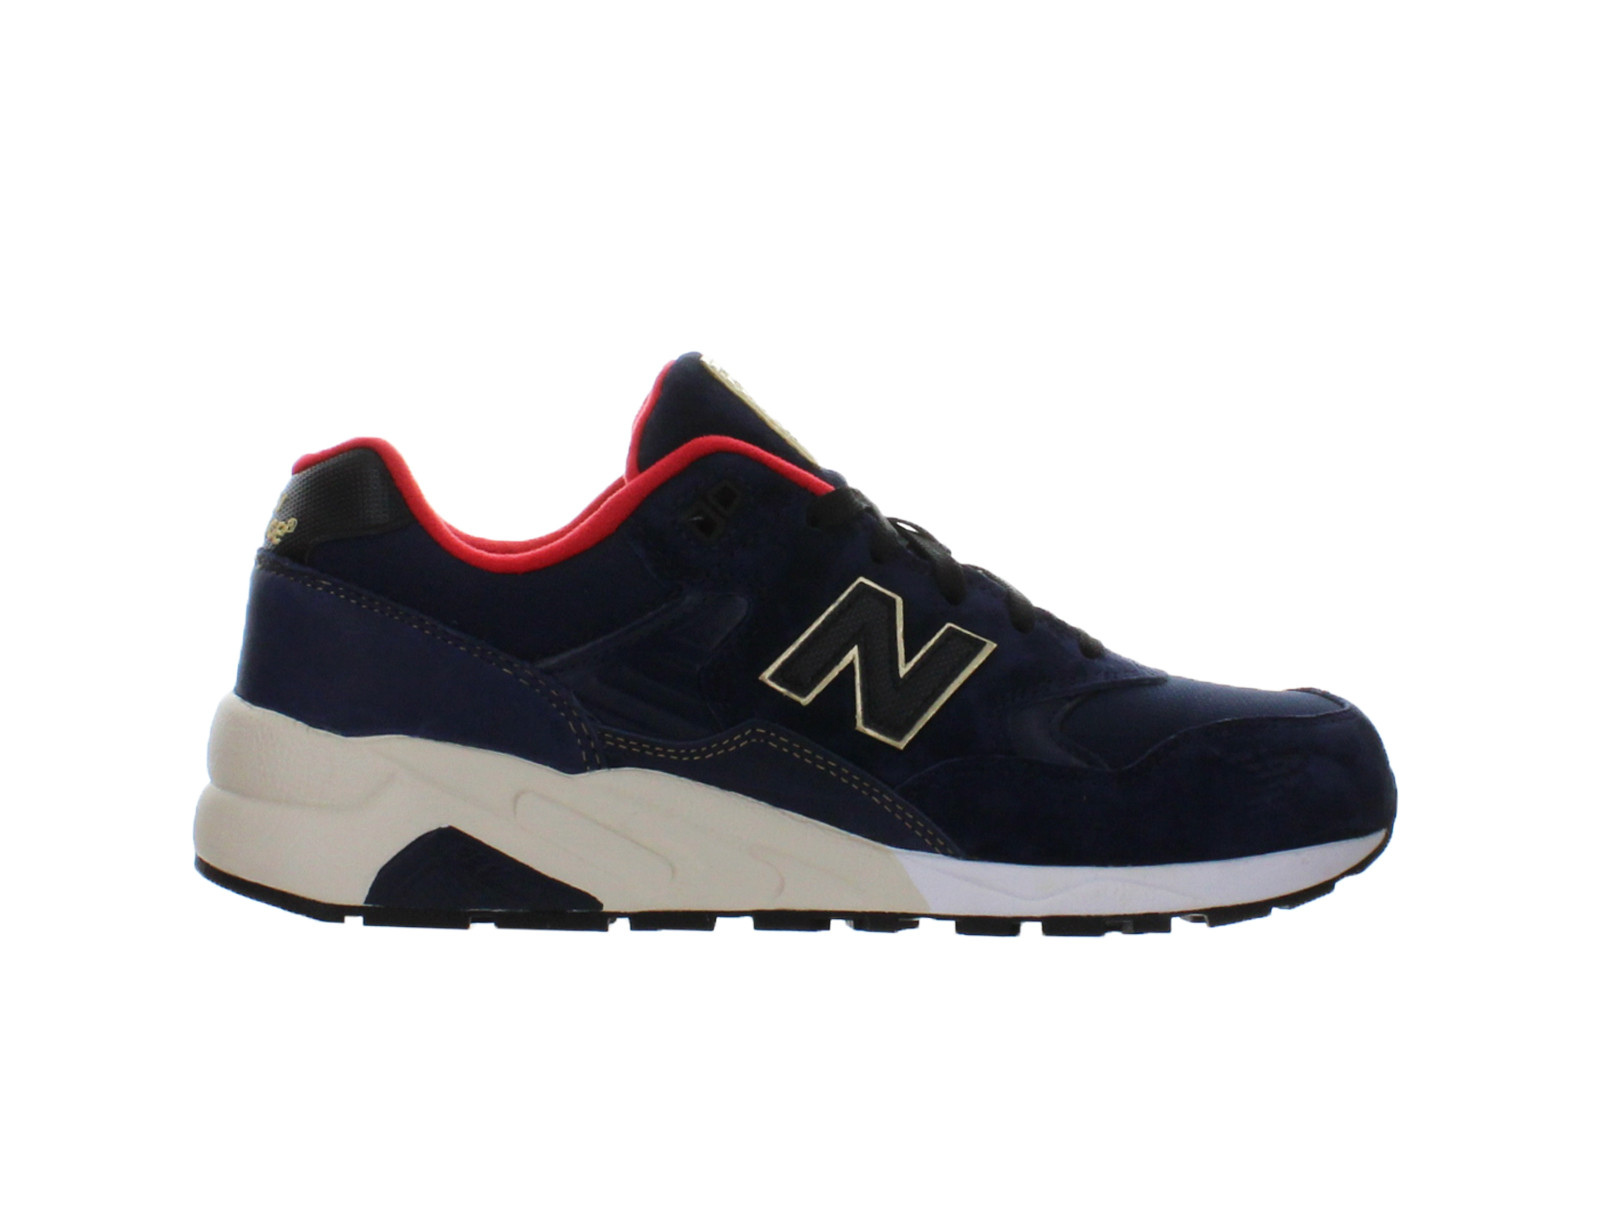 Click here to buy Mens New Balance 580 Elite Limited Edition Navy Black Gold Red White M by New Balance.